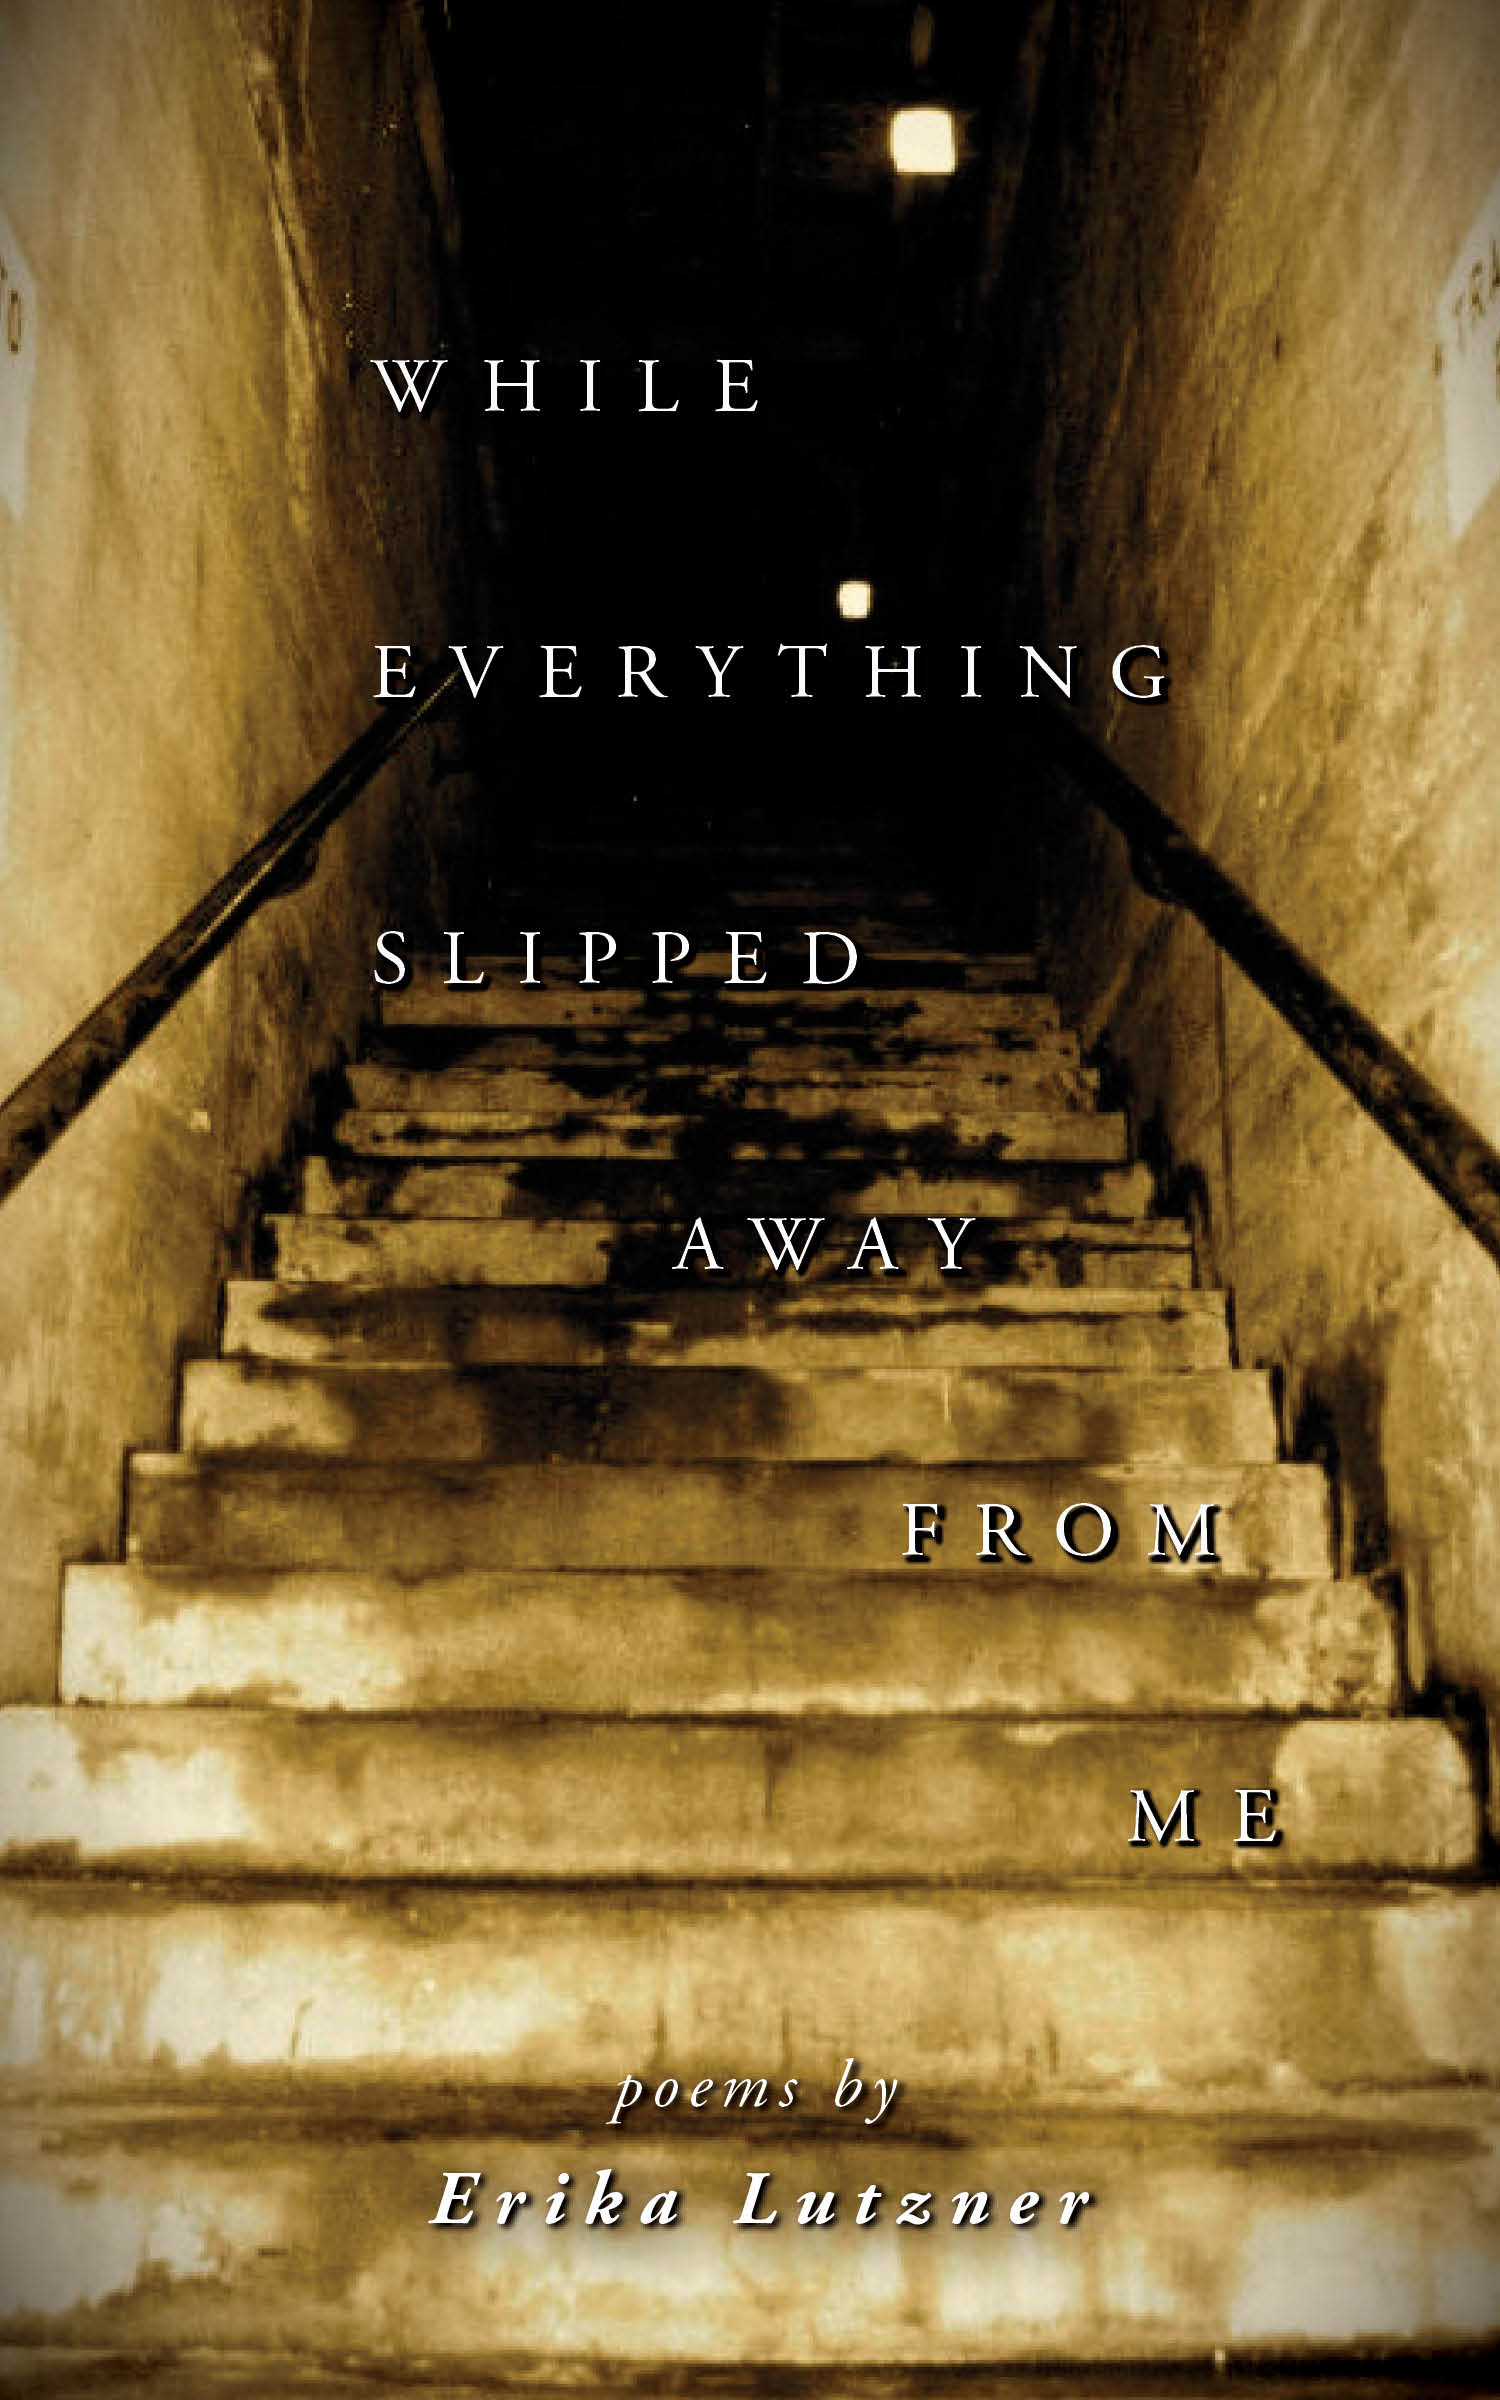 <em>While Everything Slipped Away From Me</em>